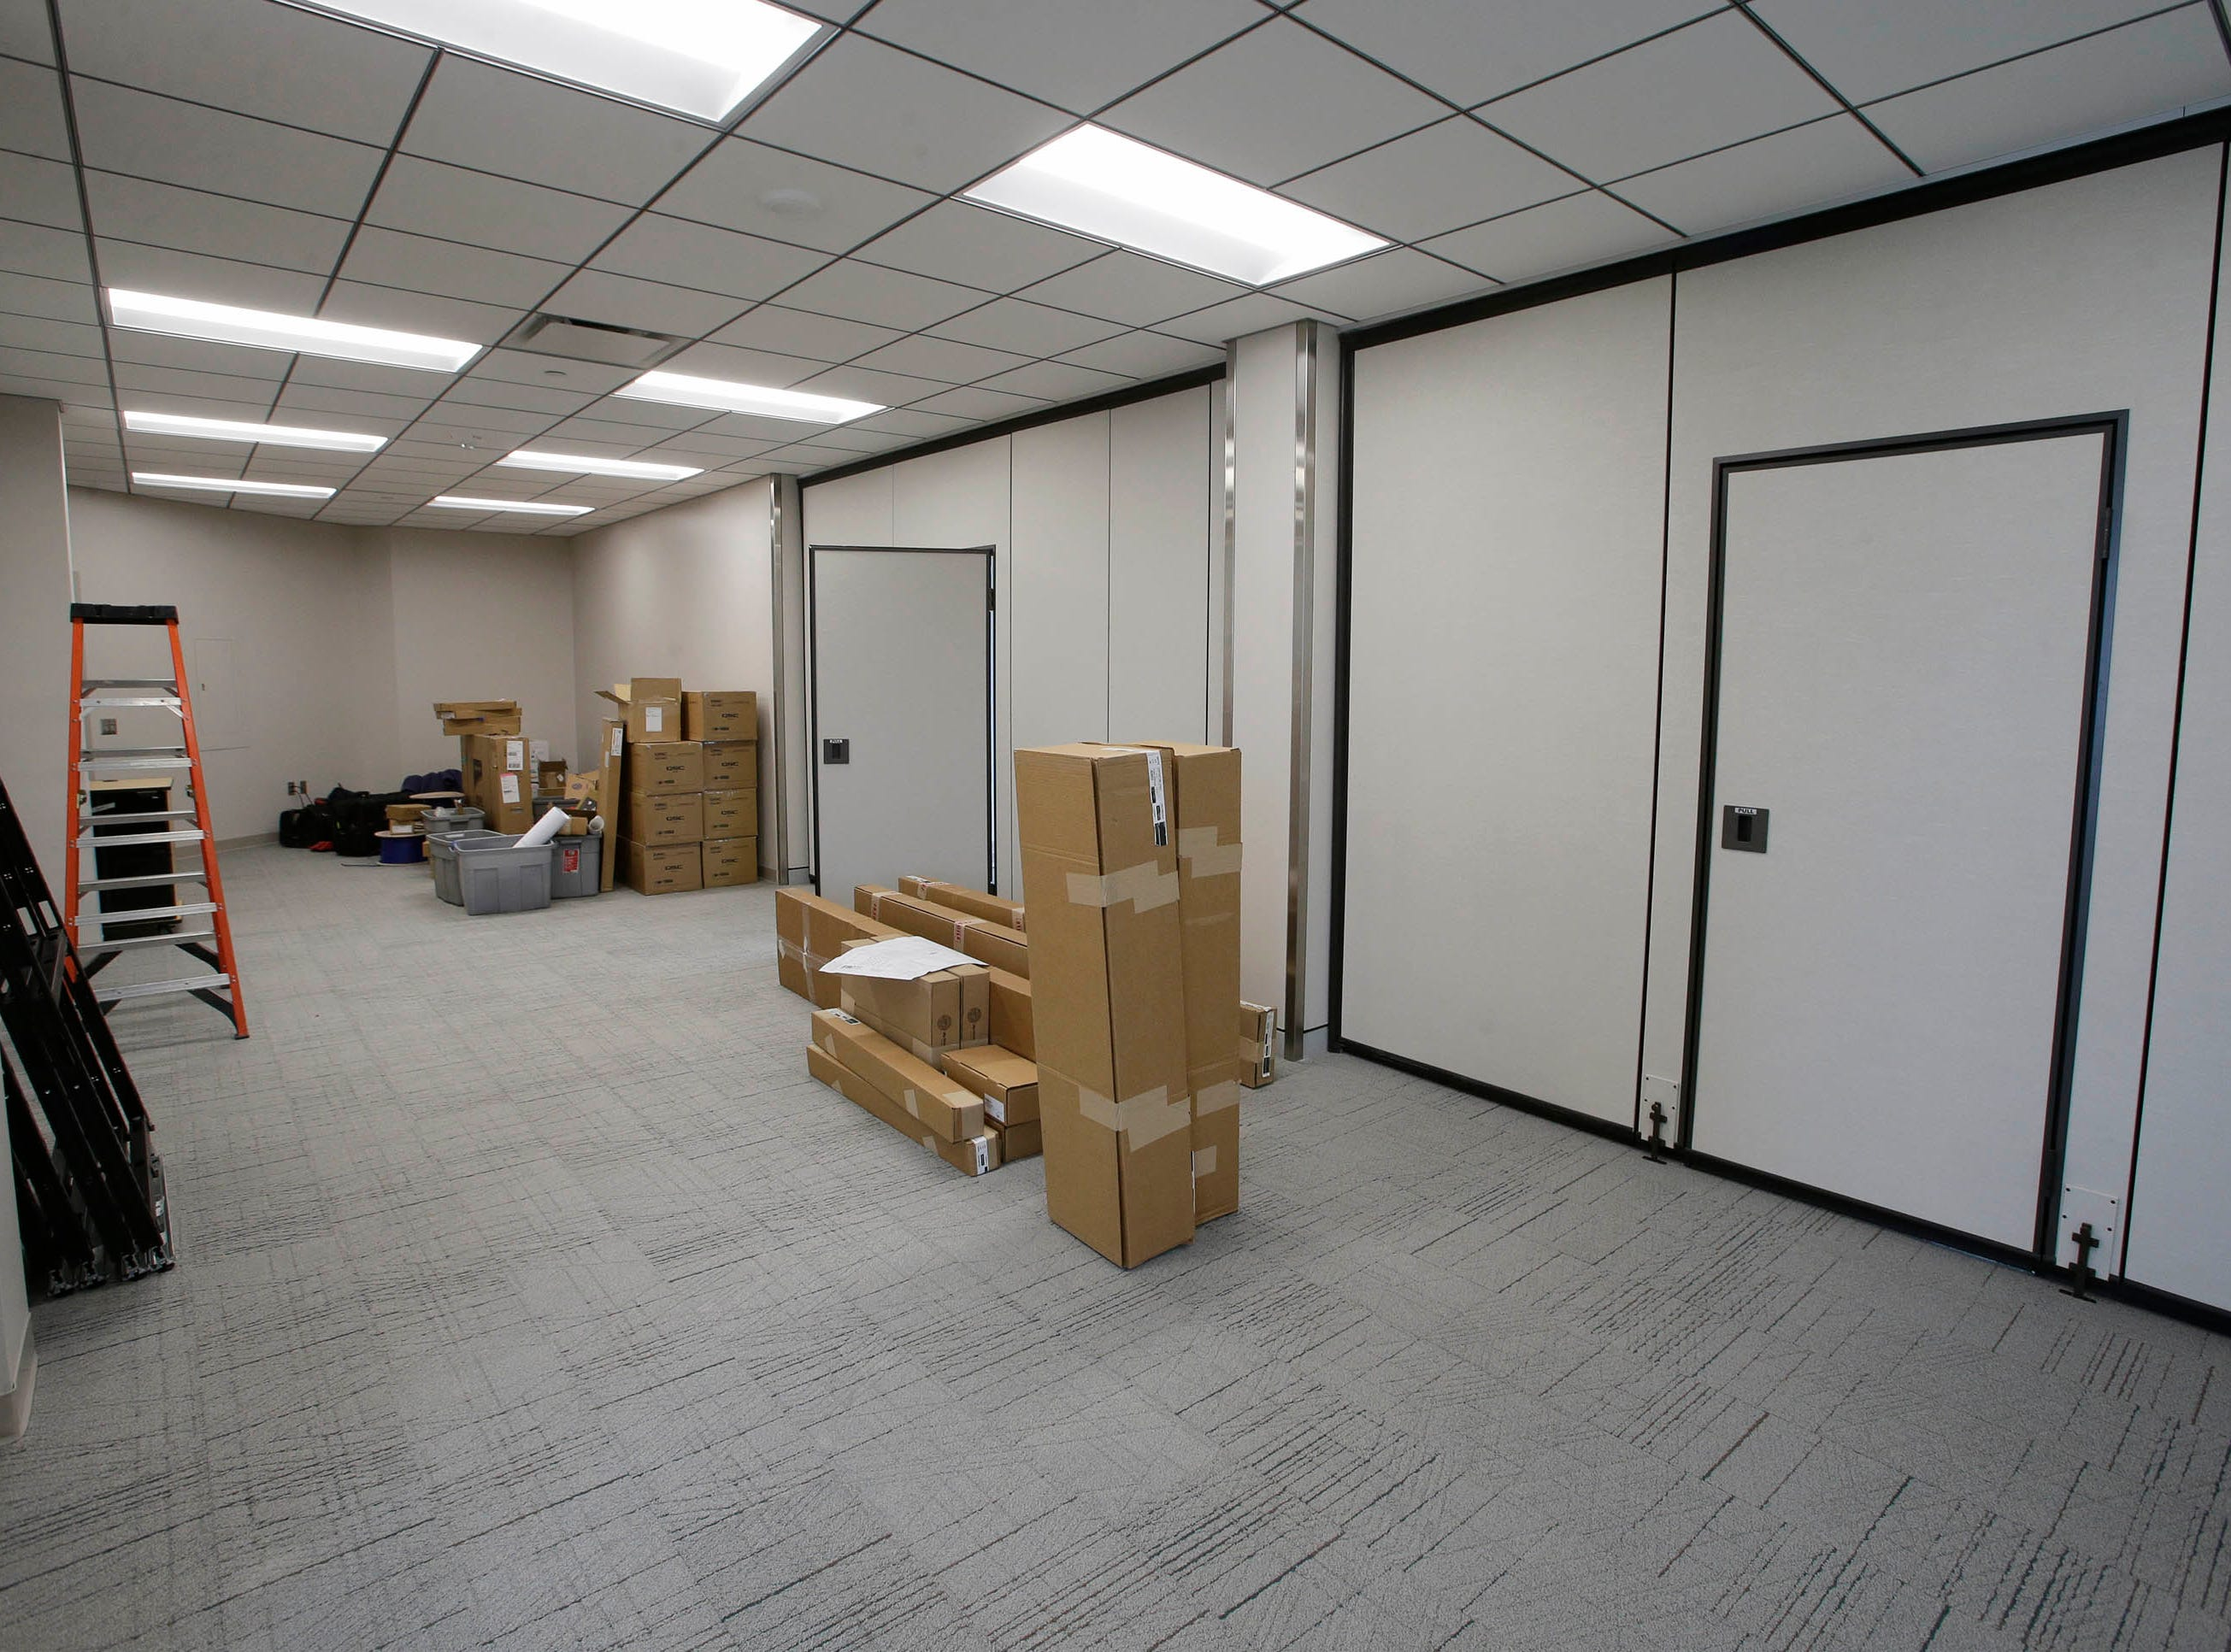 A view of the employee lounge area with its movable walls at the newly remodeled Sheboygan City Hall as seen, Tuesday, May 7, 2019, in Sheboygan, Wis.